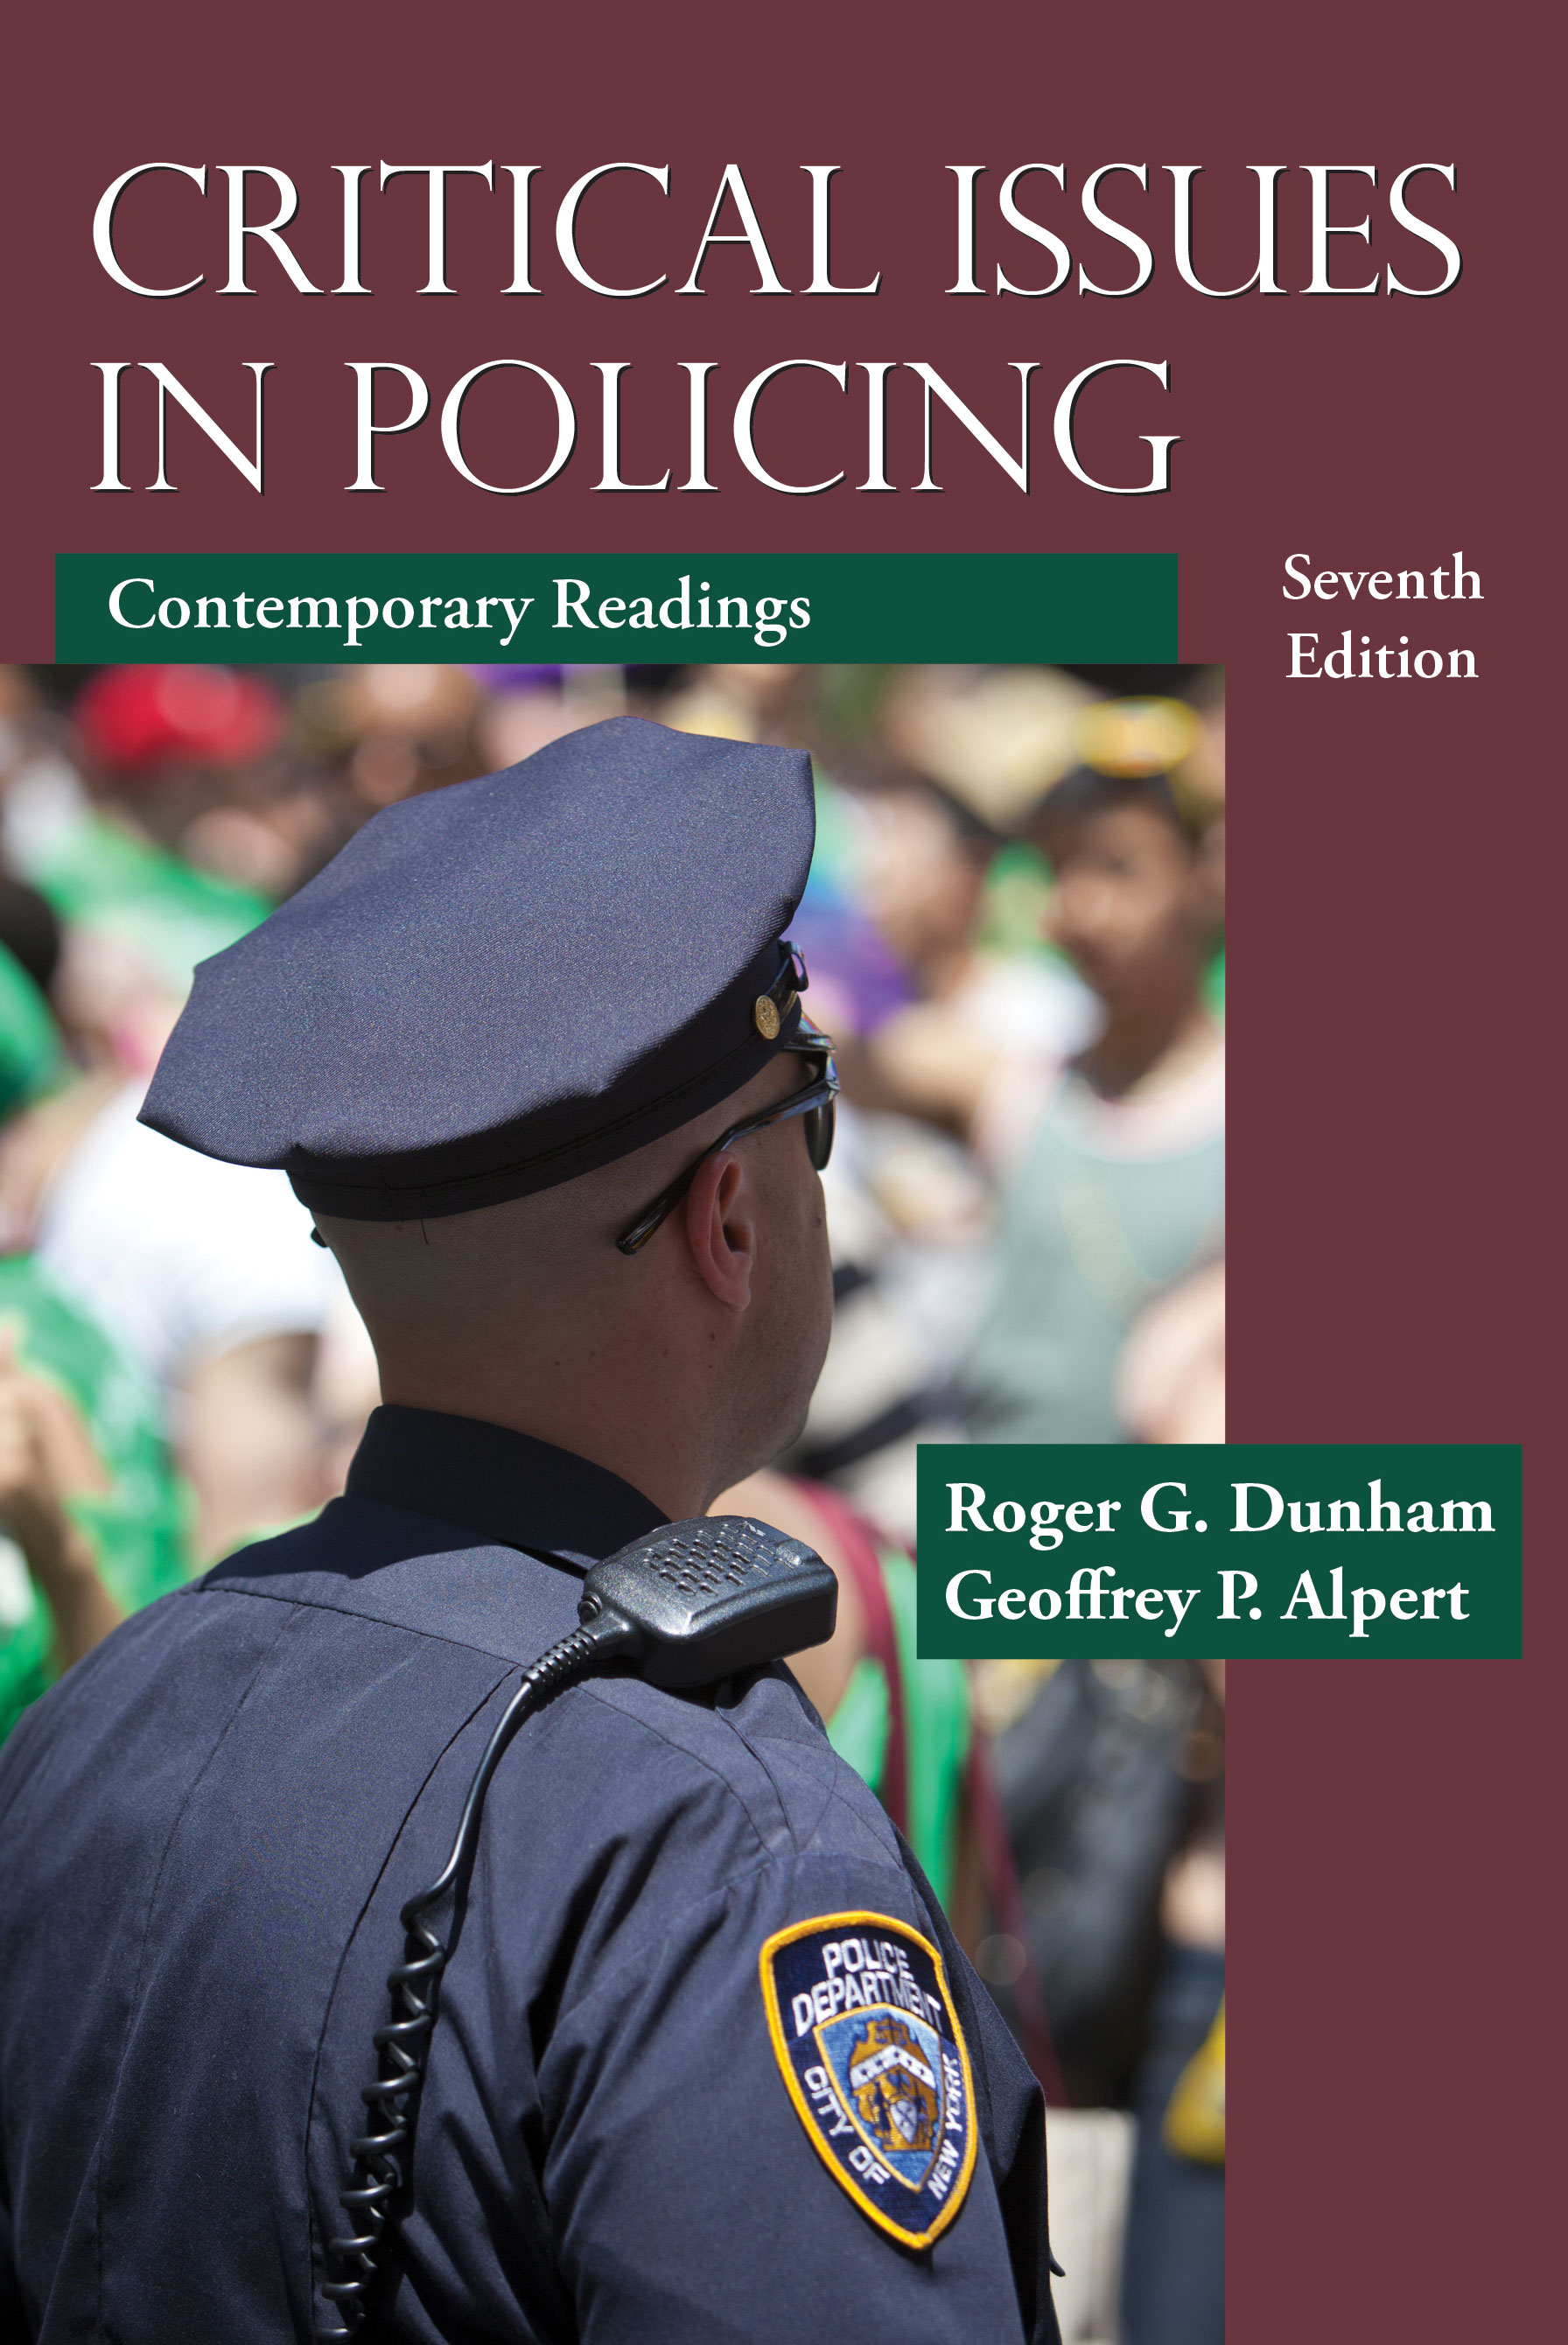 Critical Issues in Policing: Contemporary Readings by Roger G. Dunham, Geoffrey P. Alpert